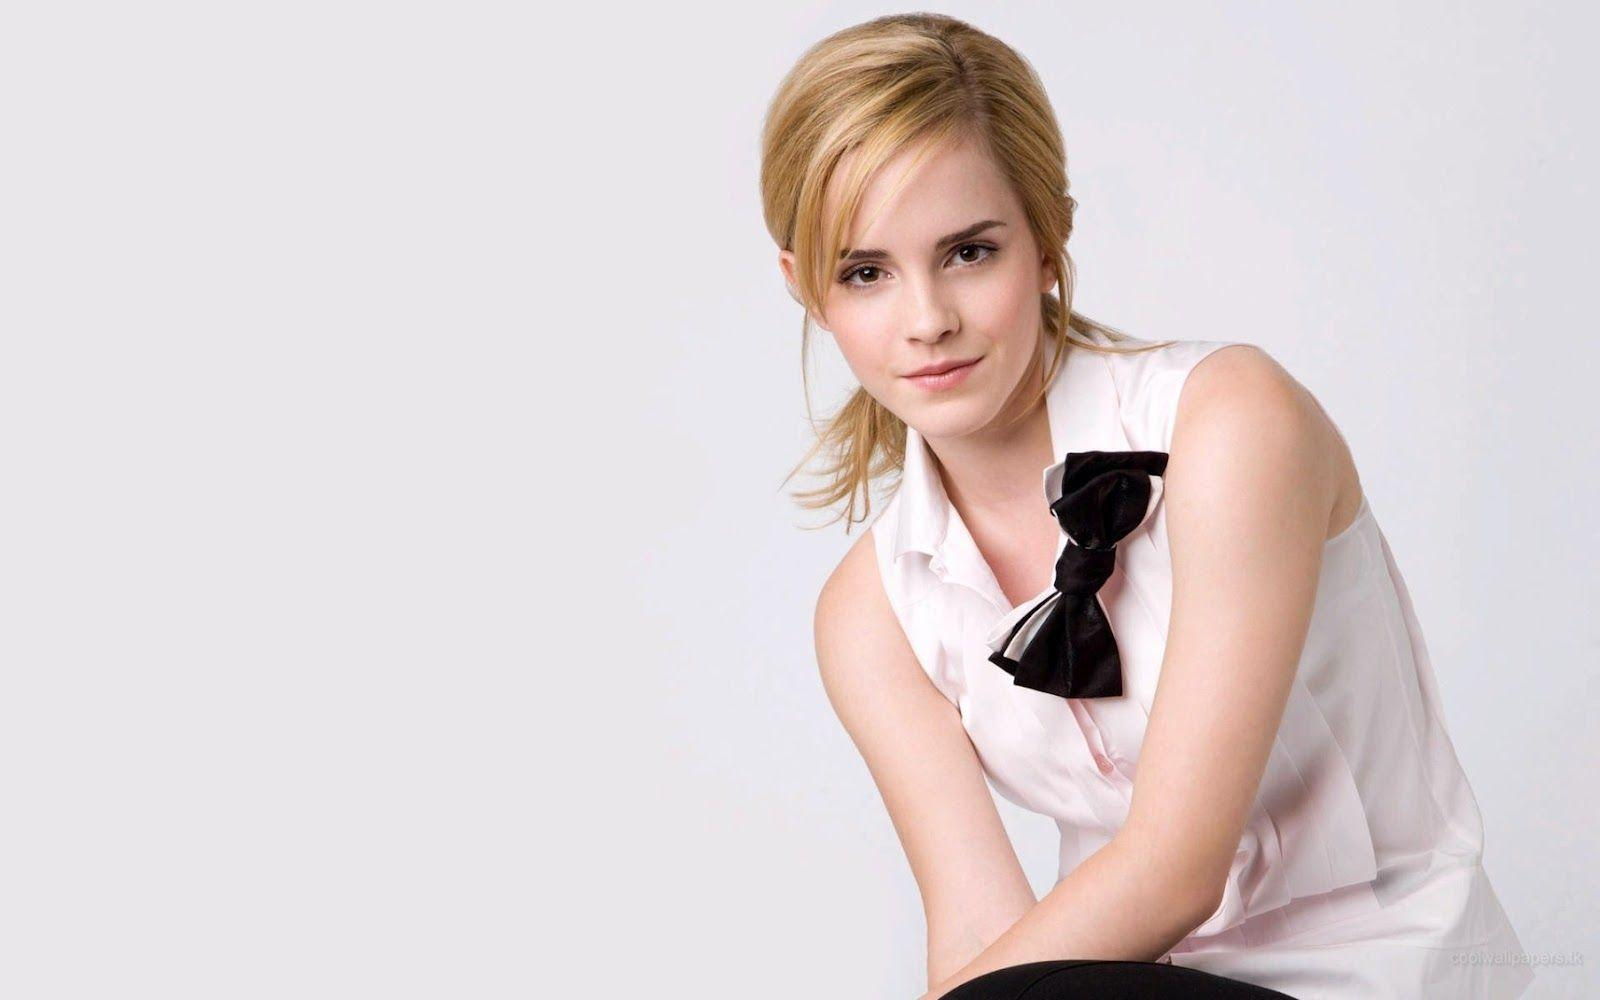 Emma Watson Wallpapers 102 227584 Image HD Wallpapers